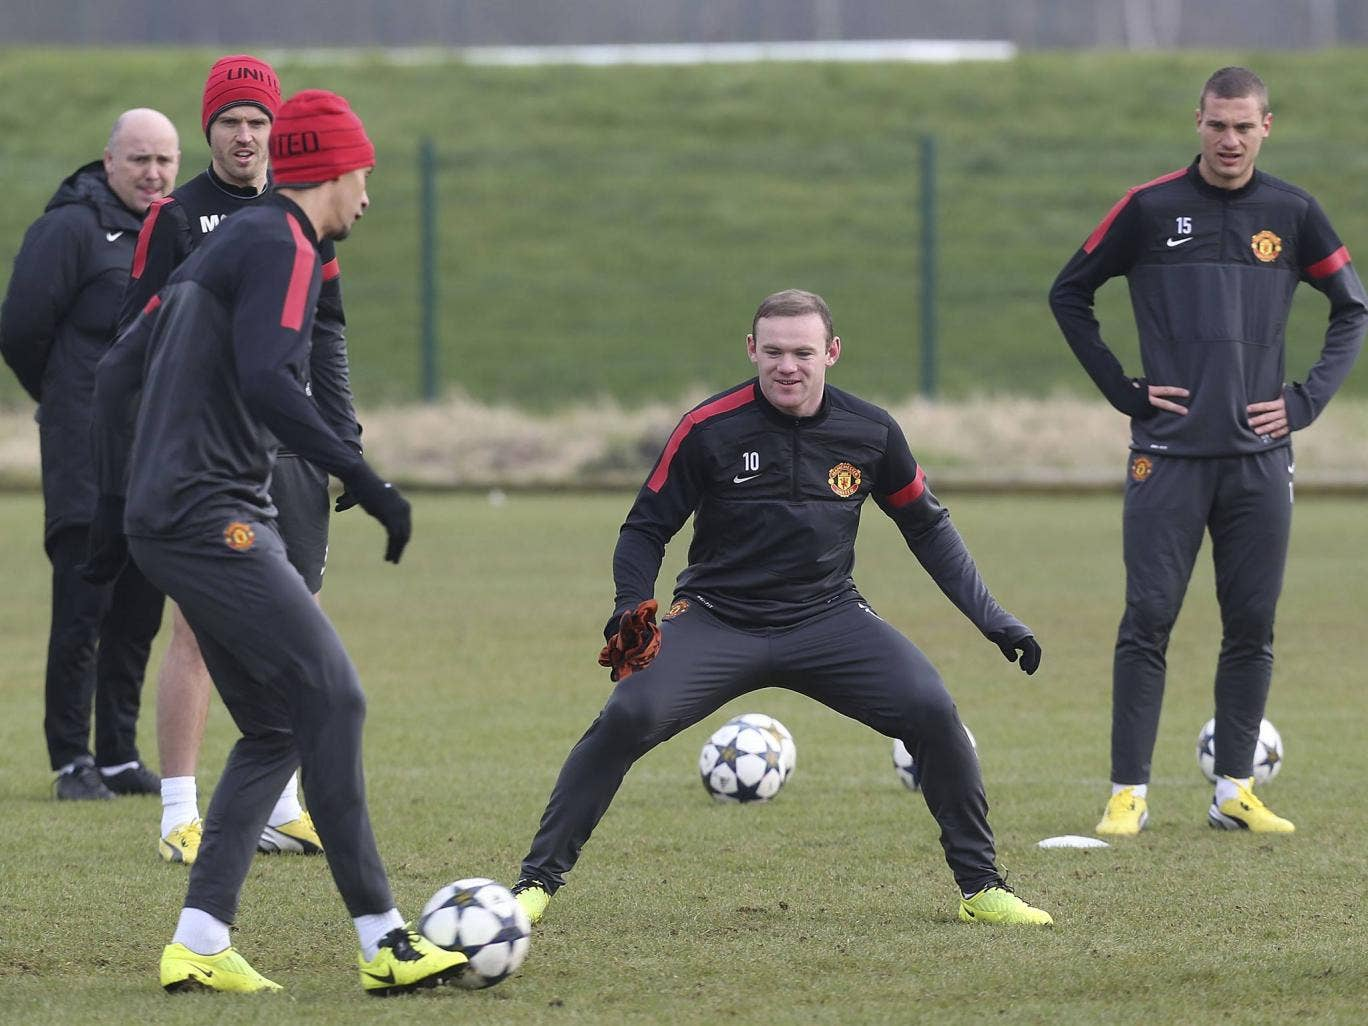 Wayne Rooney pictured training for Manchester United